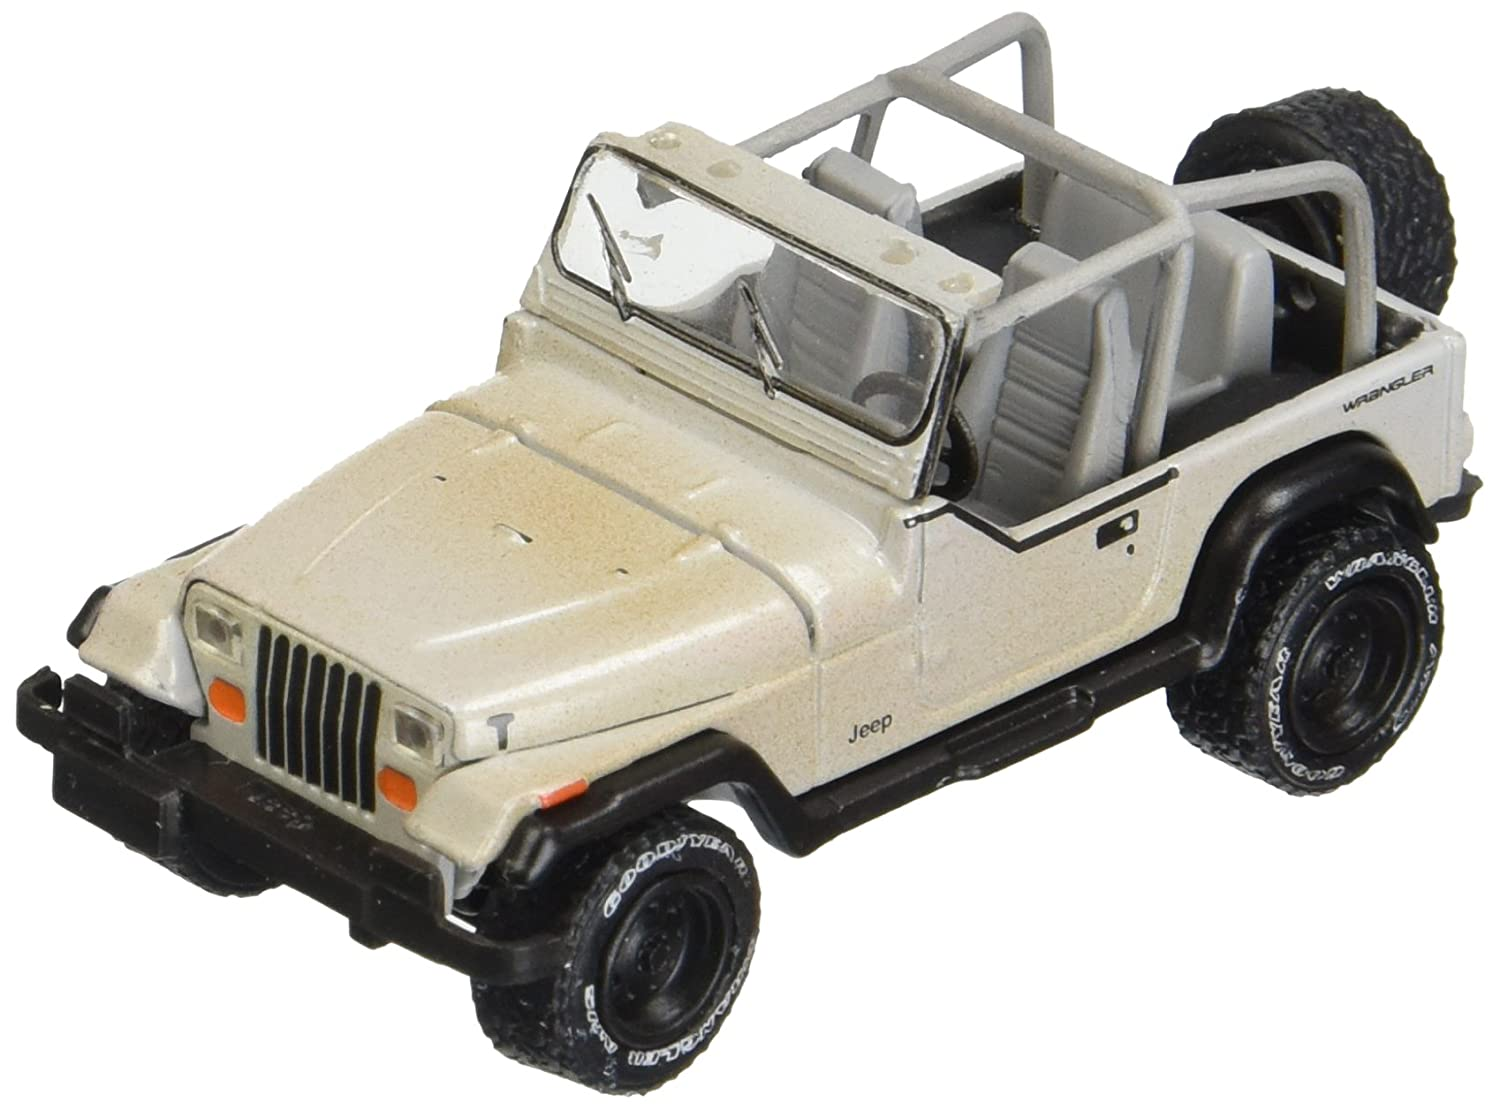 Greenlight 1 64 Hitch Tow Series 8 The Walking Dead Michonne's Jeep Wrangler YJ Utility Trailer with Zombies Diecast Vehicle